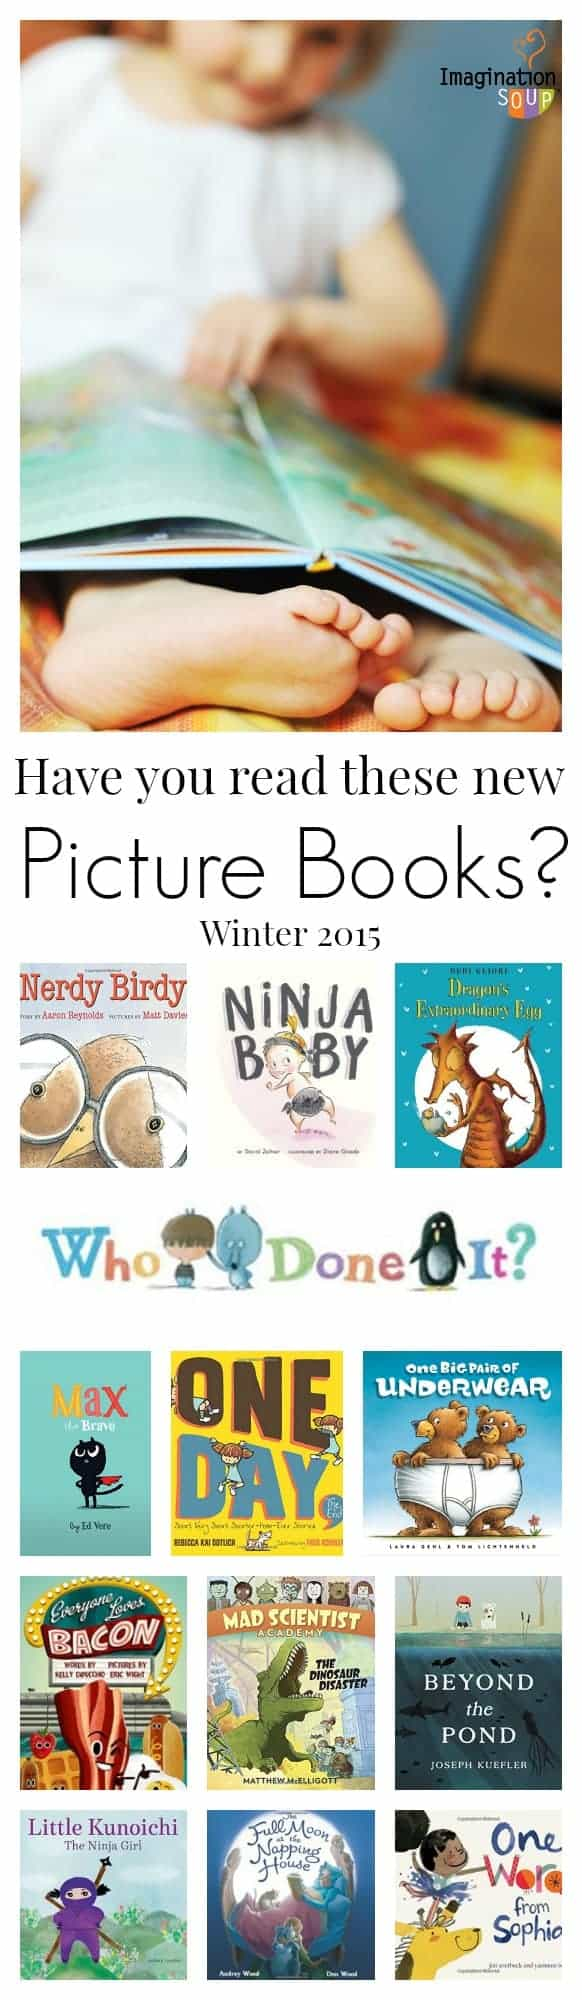 new picture books winter 2015